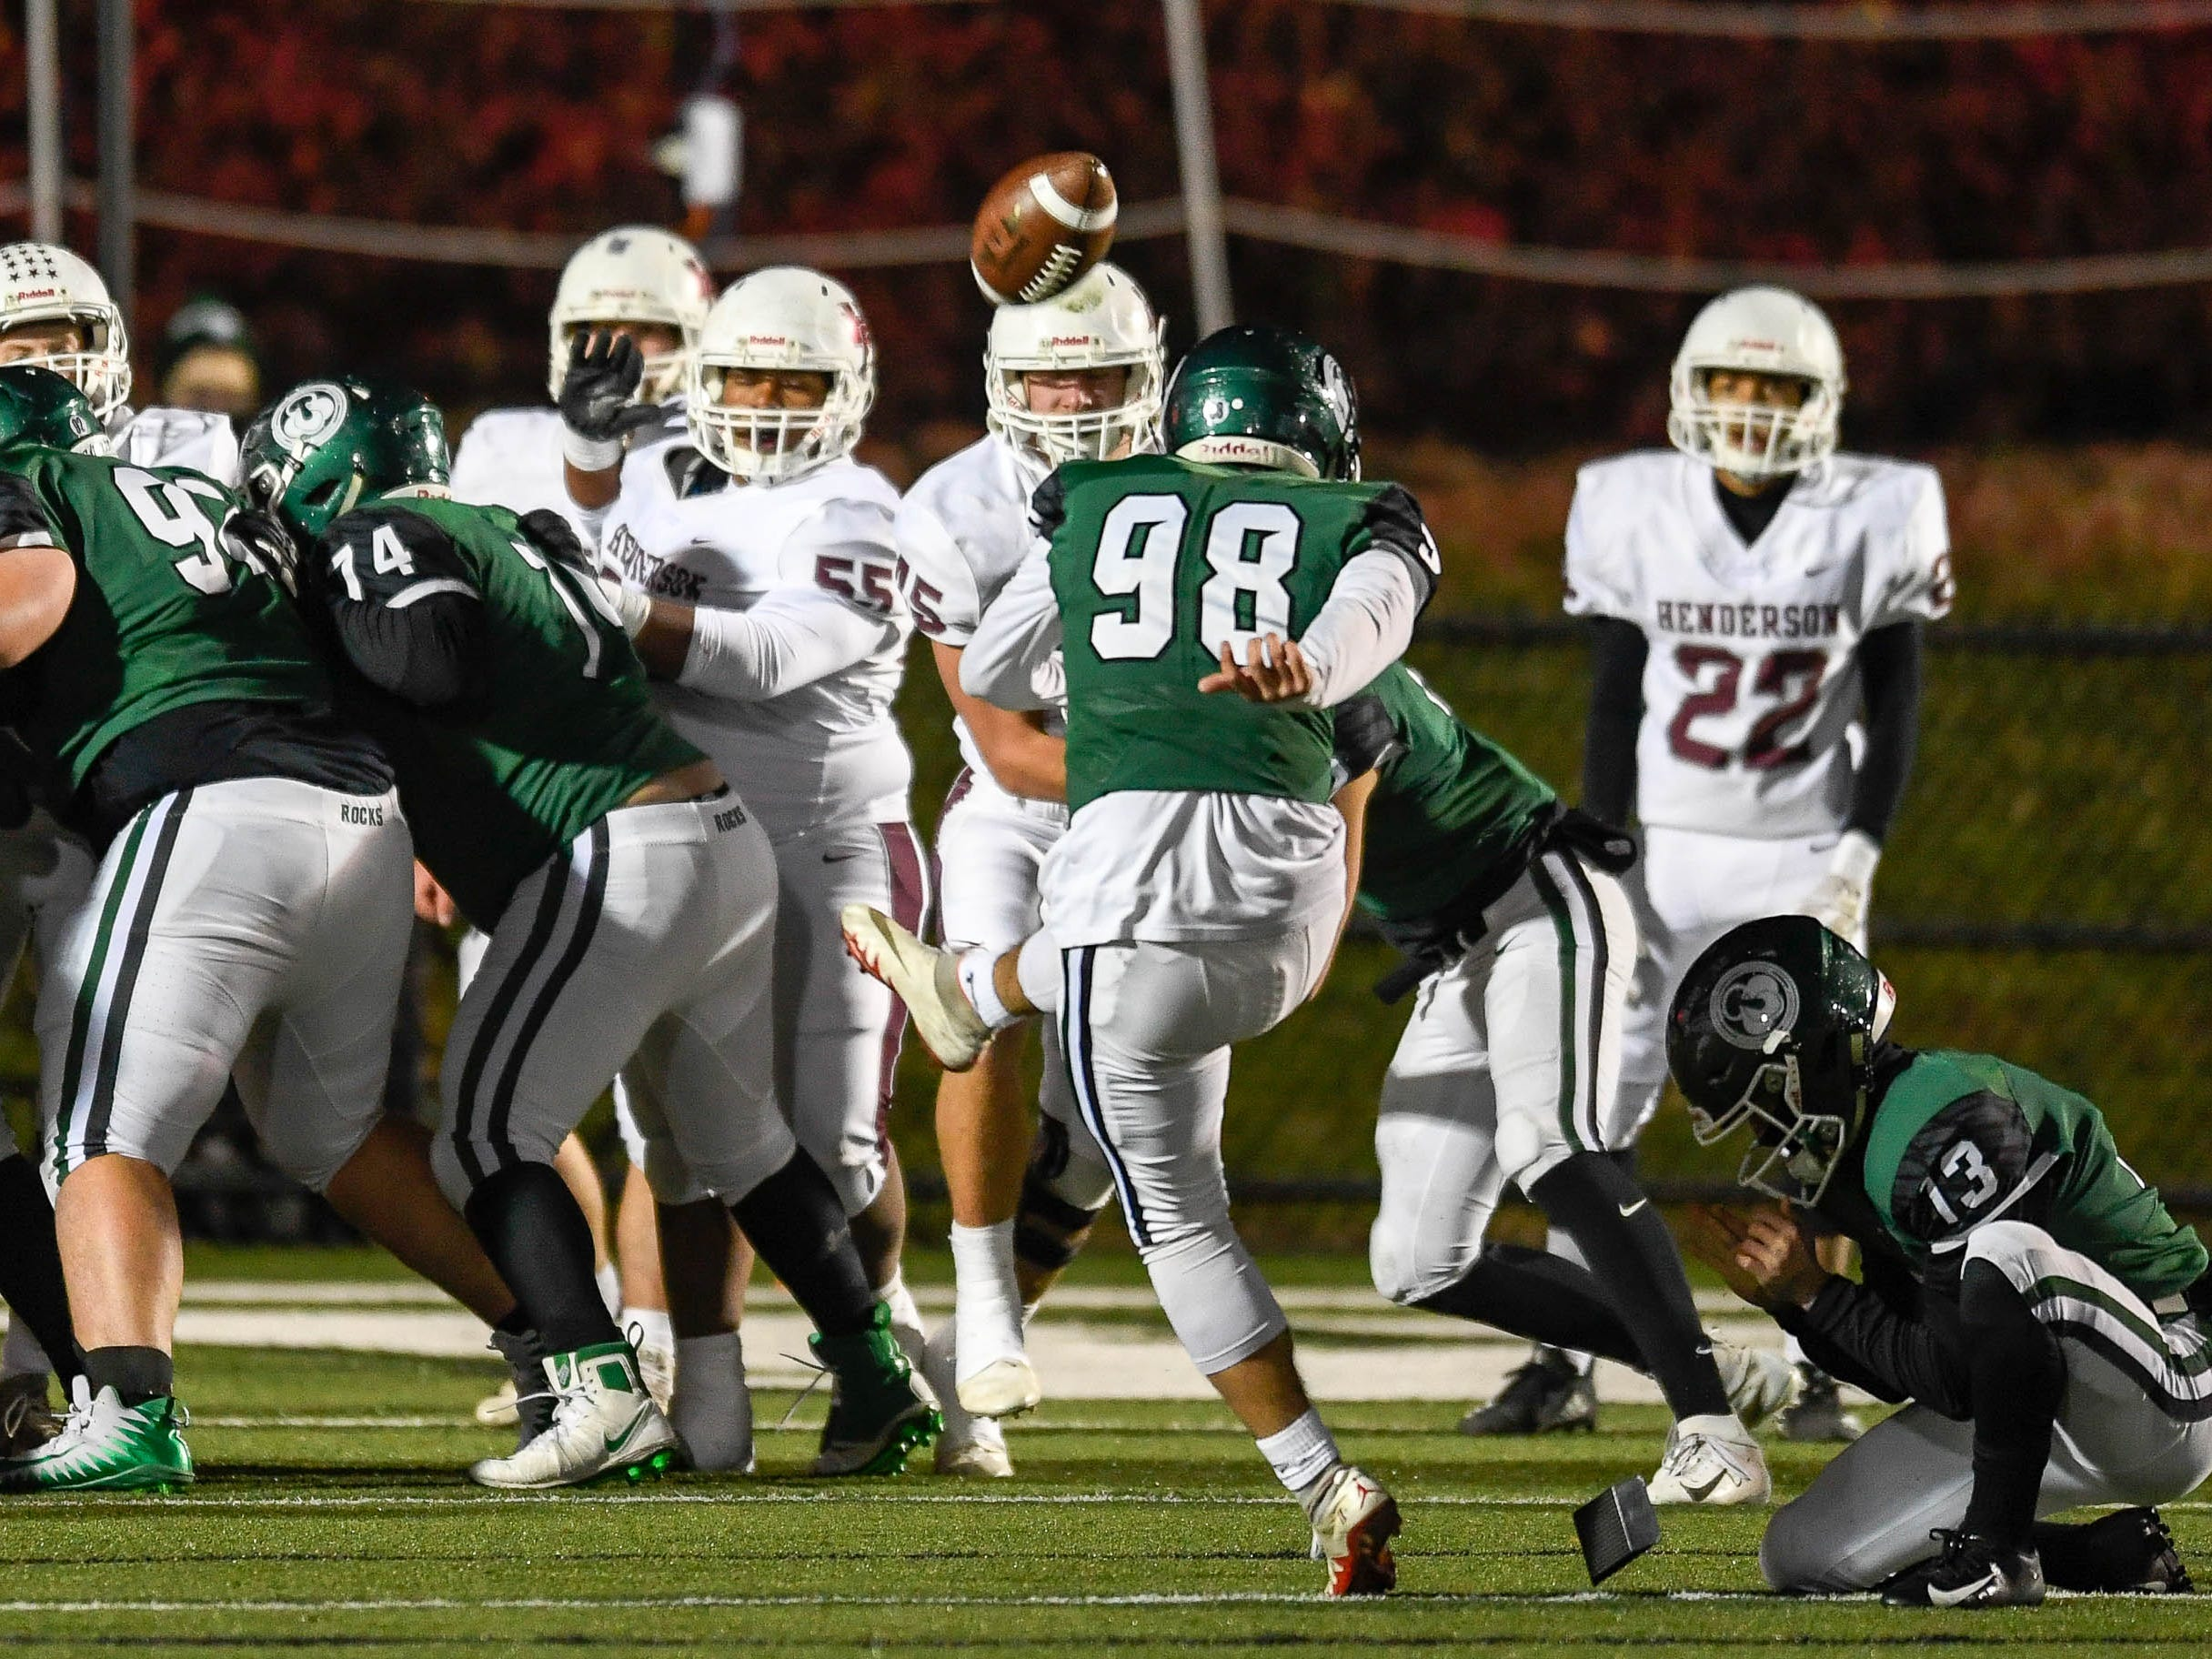 Trinity's Sebastian Mata (98) kicks a extra point as the Henderson County Colonels play the Trinity Shamrocks in the second round of the Class 6-A football playoffs at Marshall Stadium in Louisville Friday, November 9, 2018.